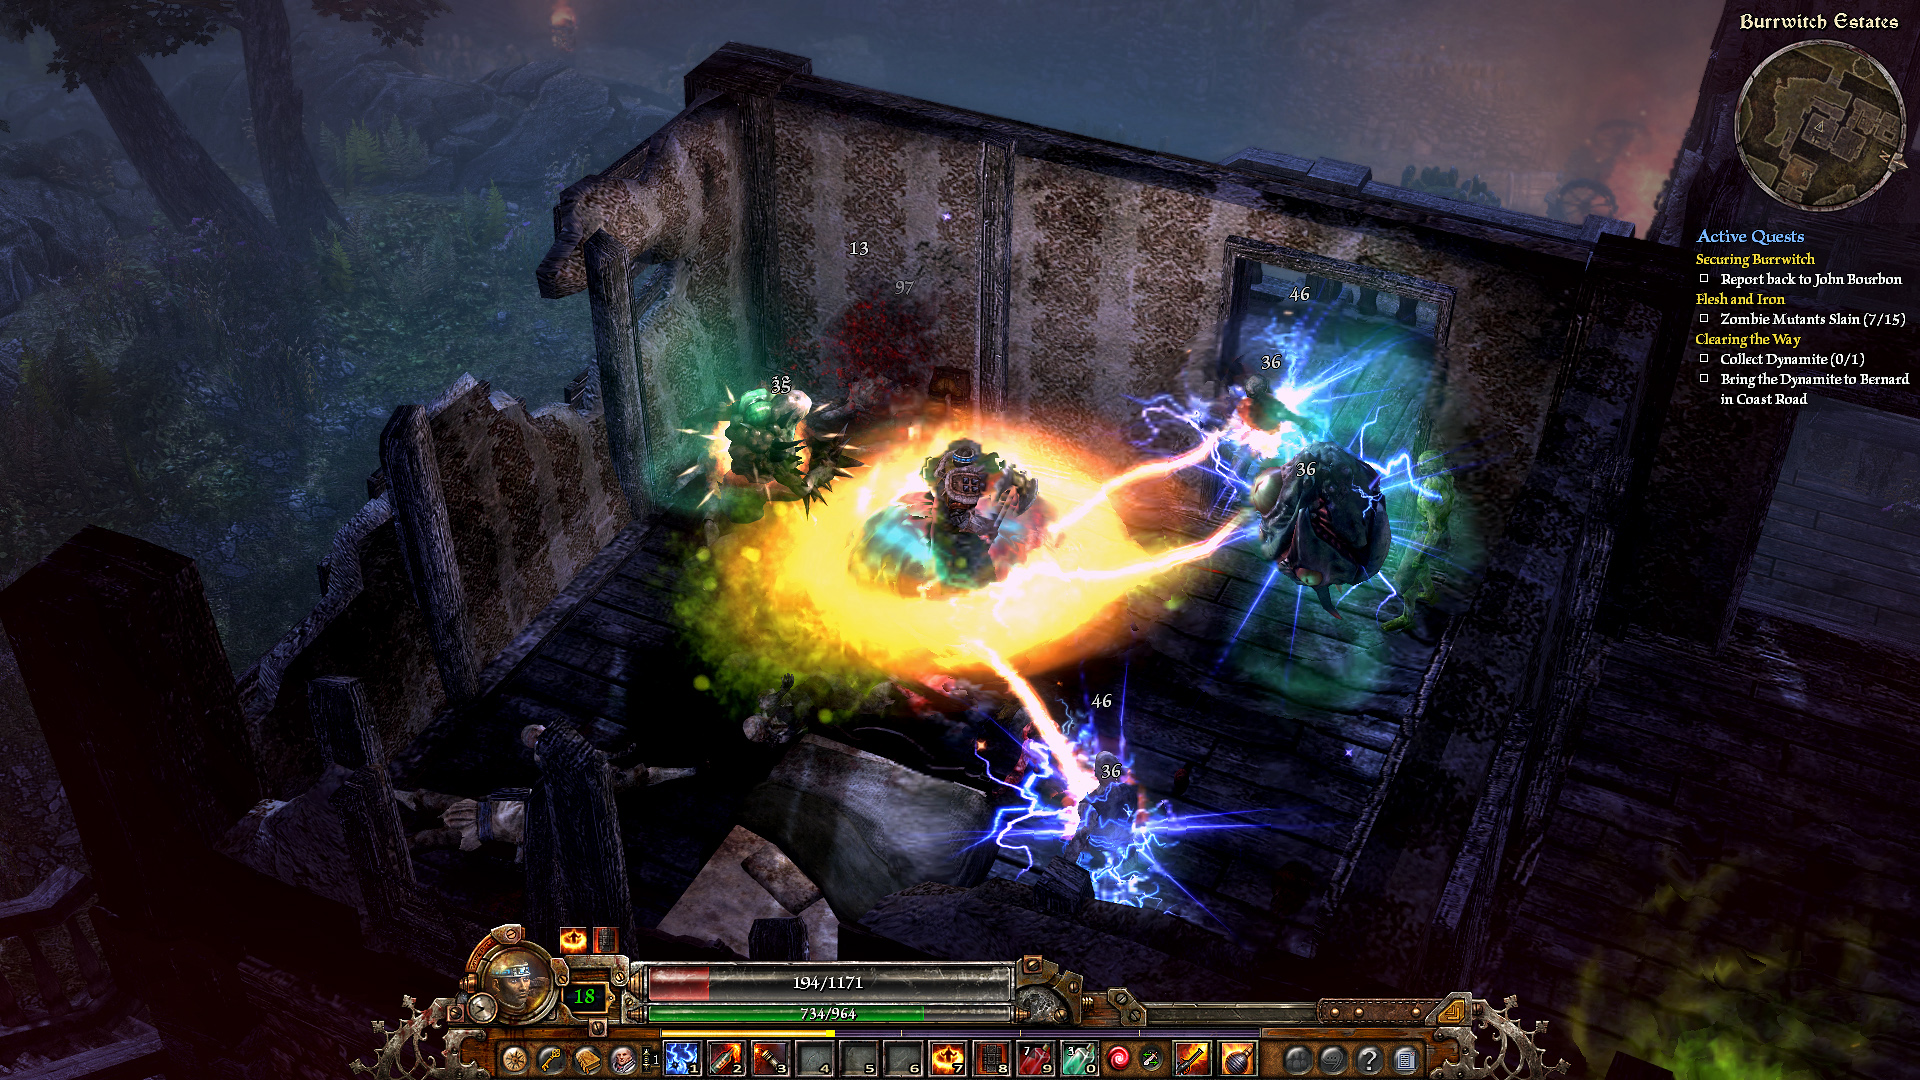 Crate Entertainment talks action-RPG Grim Dawn | GameWatcher